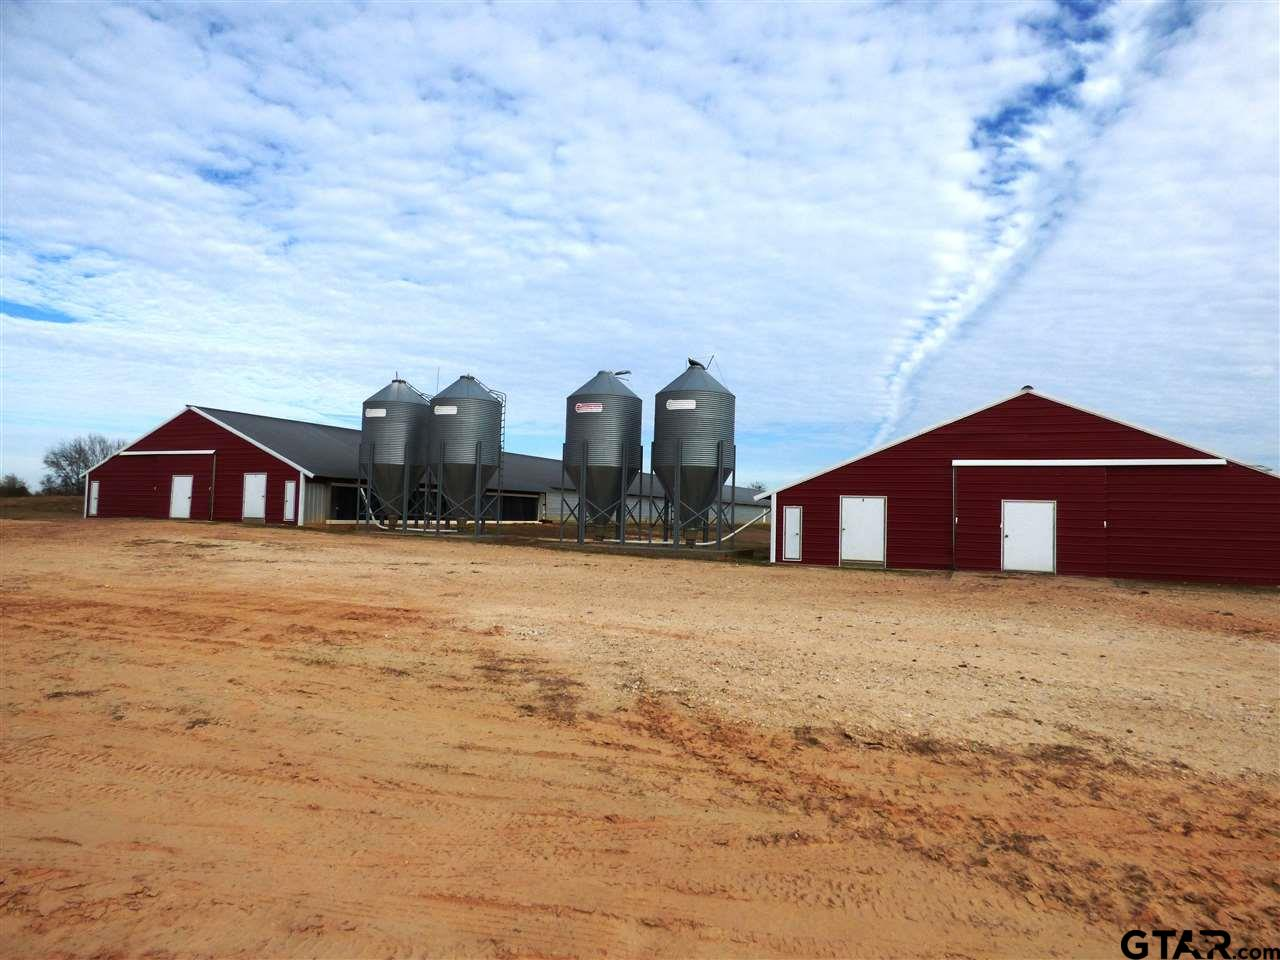 6/500 FT POULTRY HOUSES .  THIS FARM, BUILT IN 2003, FEATURE THE 6/ 500 FT STEEL HOUSES AS WELL AS AN INSULATED SHOP, COMPOSTER, AND INCINERATOR. THIS FARM IS WELL MAINTAINED.  THERE ARE 2/ 500+ FT WELLS.  CUMBERLAND FEEDERS, PLASSON WATER, AND LB WHITE BROODERS.  BUYERS MUST BE APPROVED AS A GROWER THROUGH PILGRIMS AND BE PRE-APPROVED FOR FINANCING.